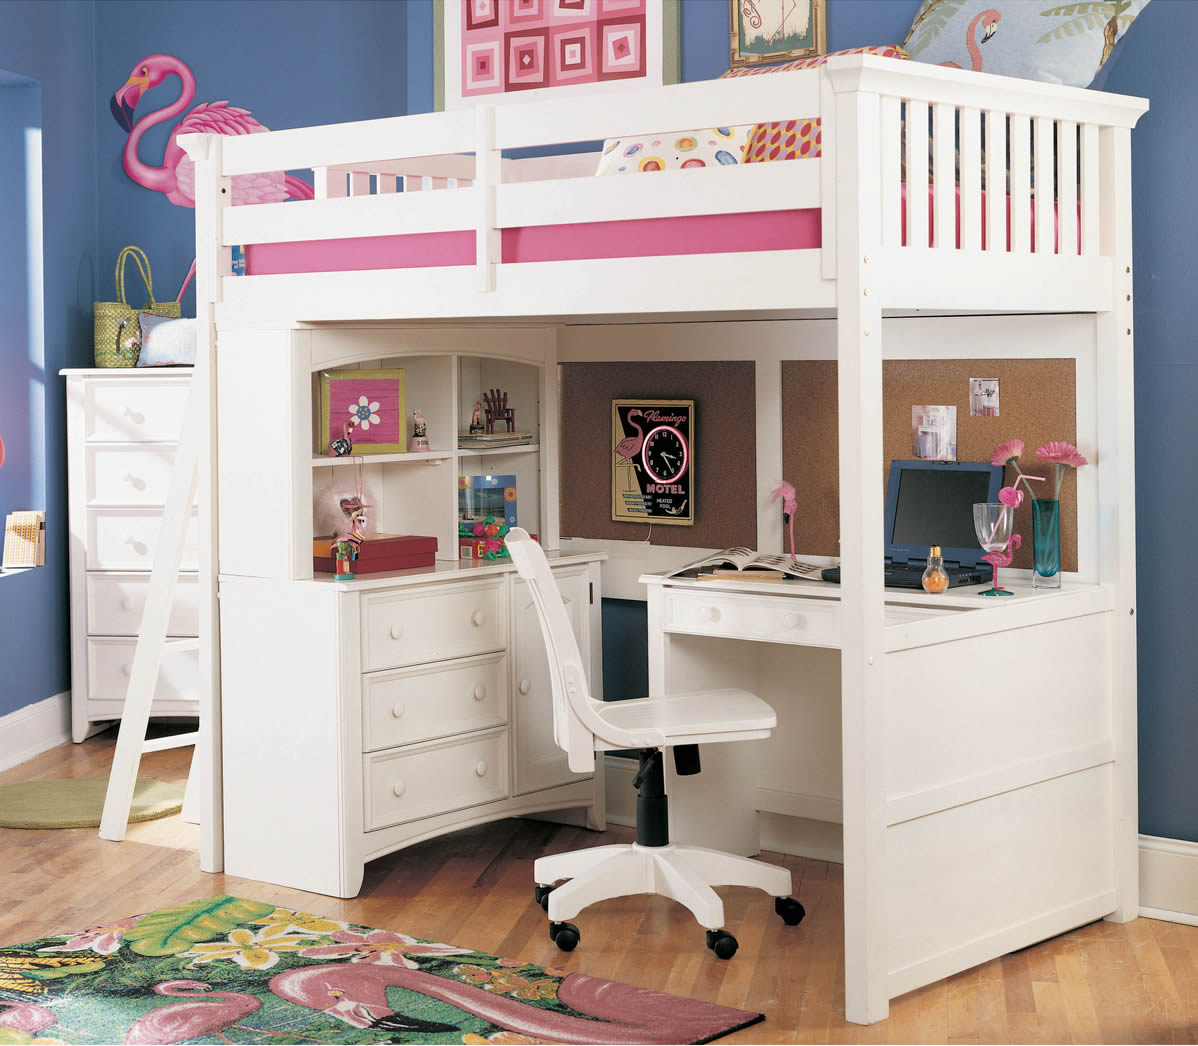 Bunk bed with desk underneath plans - Loft Bed With Desk Underneath Additionally Bunk Bed With Stairs Plans